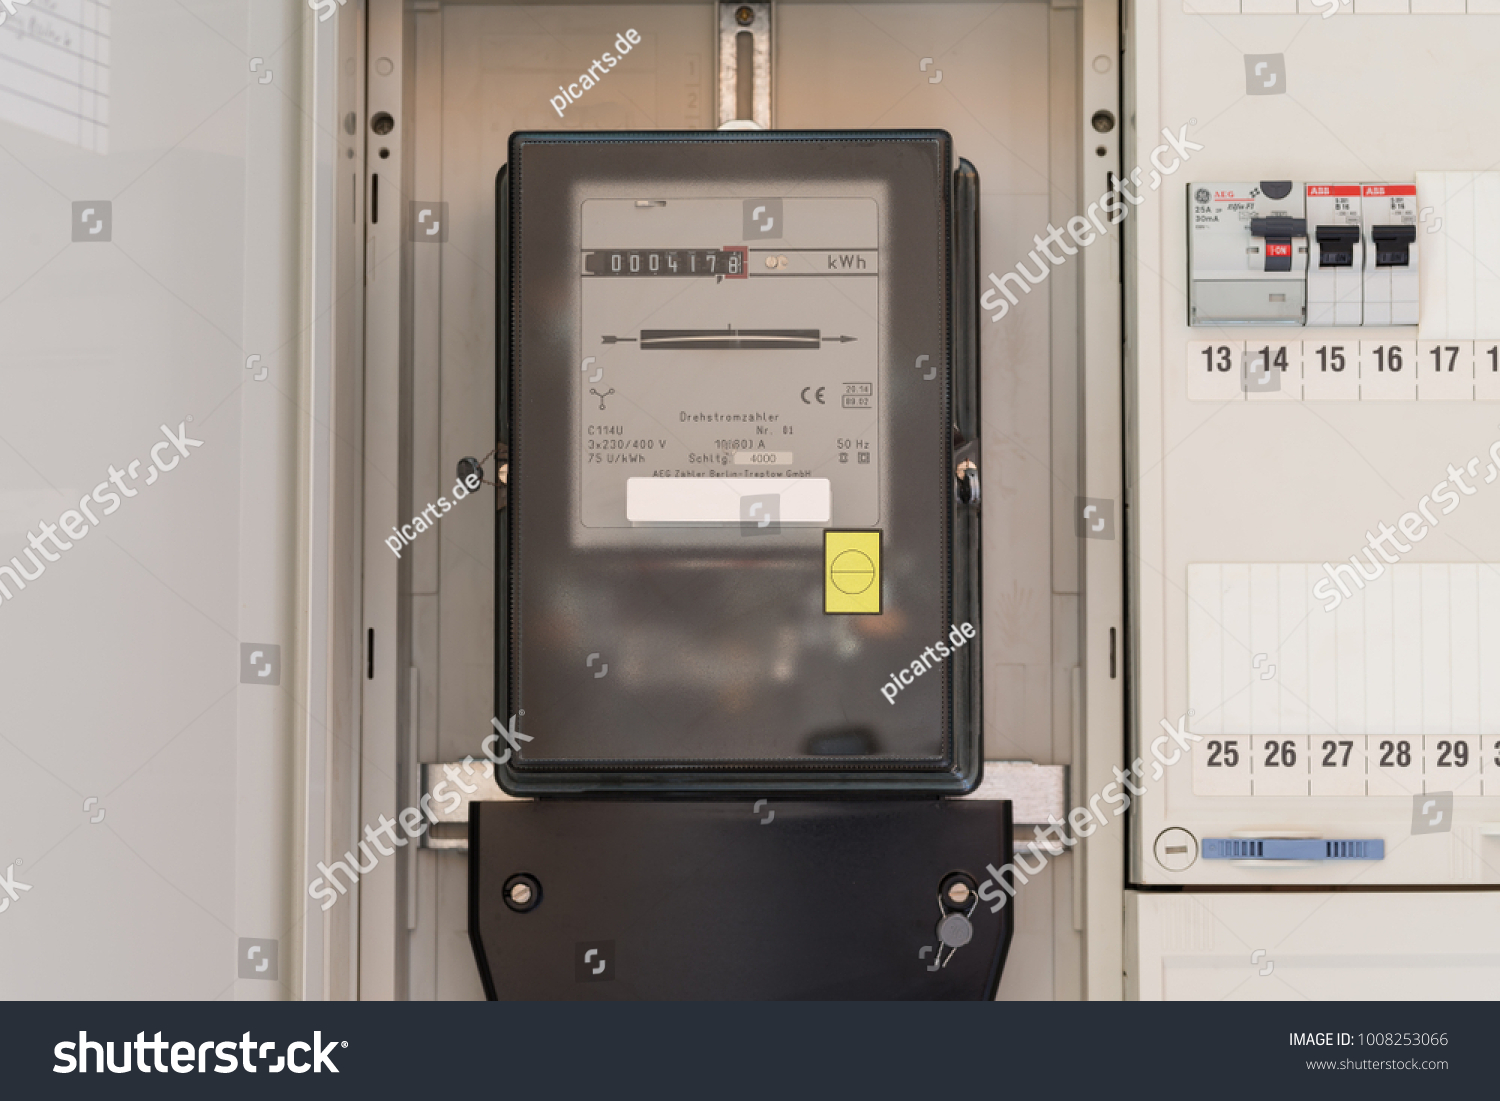 Electric Meter Fuse Box Stock Photo Edit Now 1008253066 Shutterstock Electrical Boxes In A